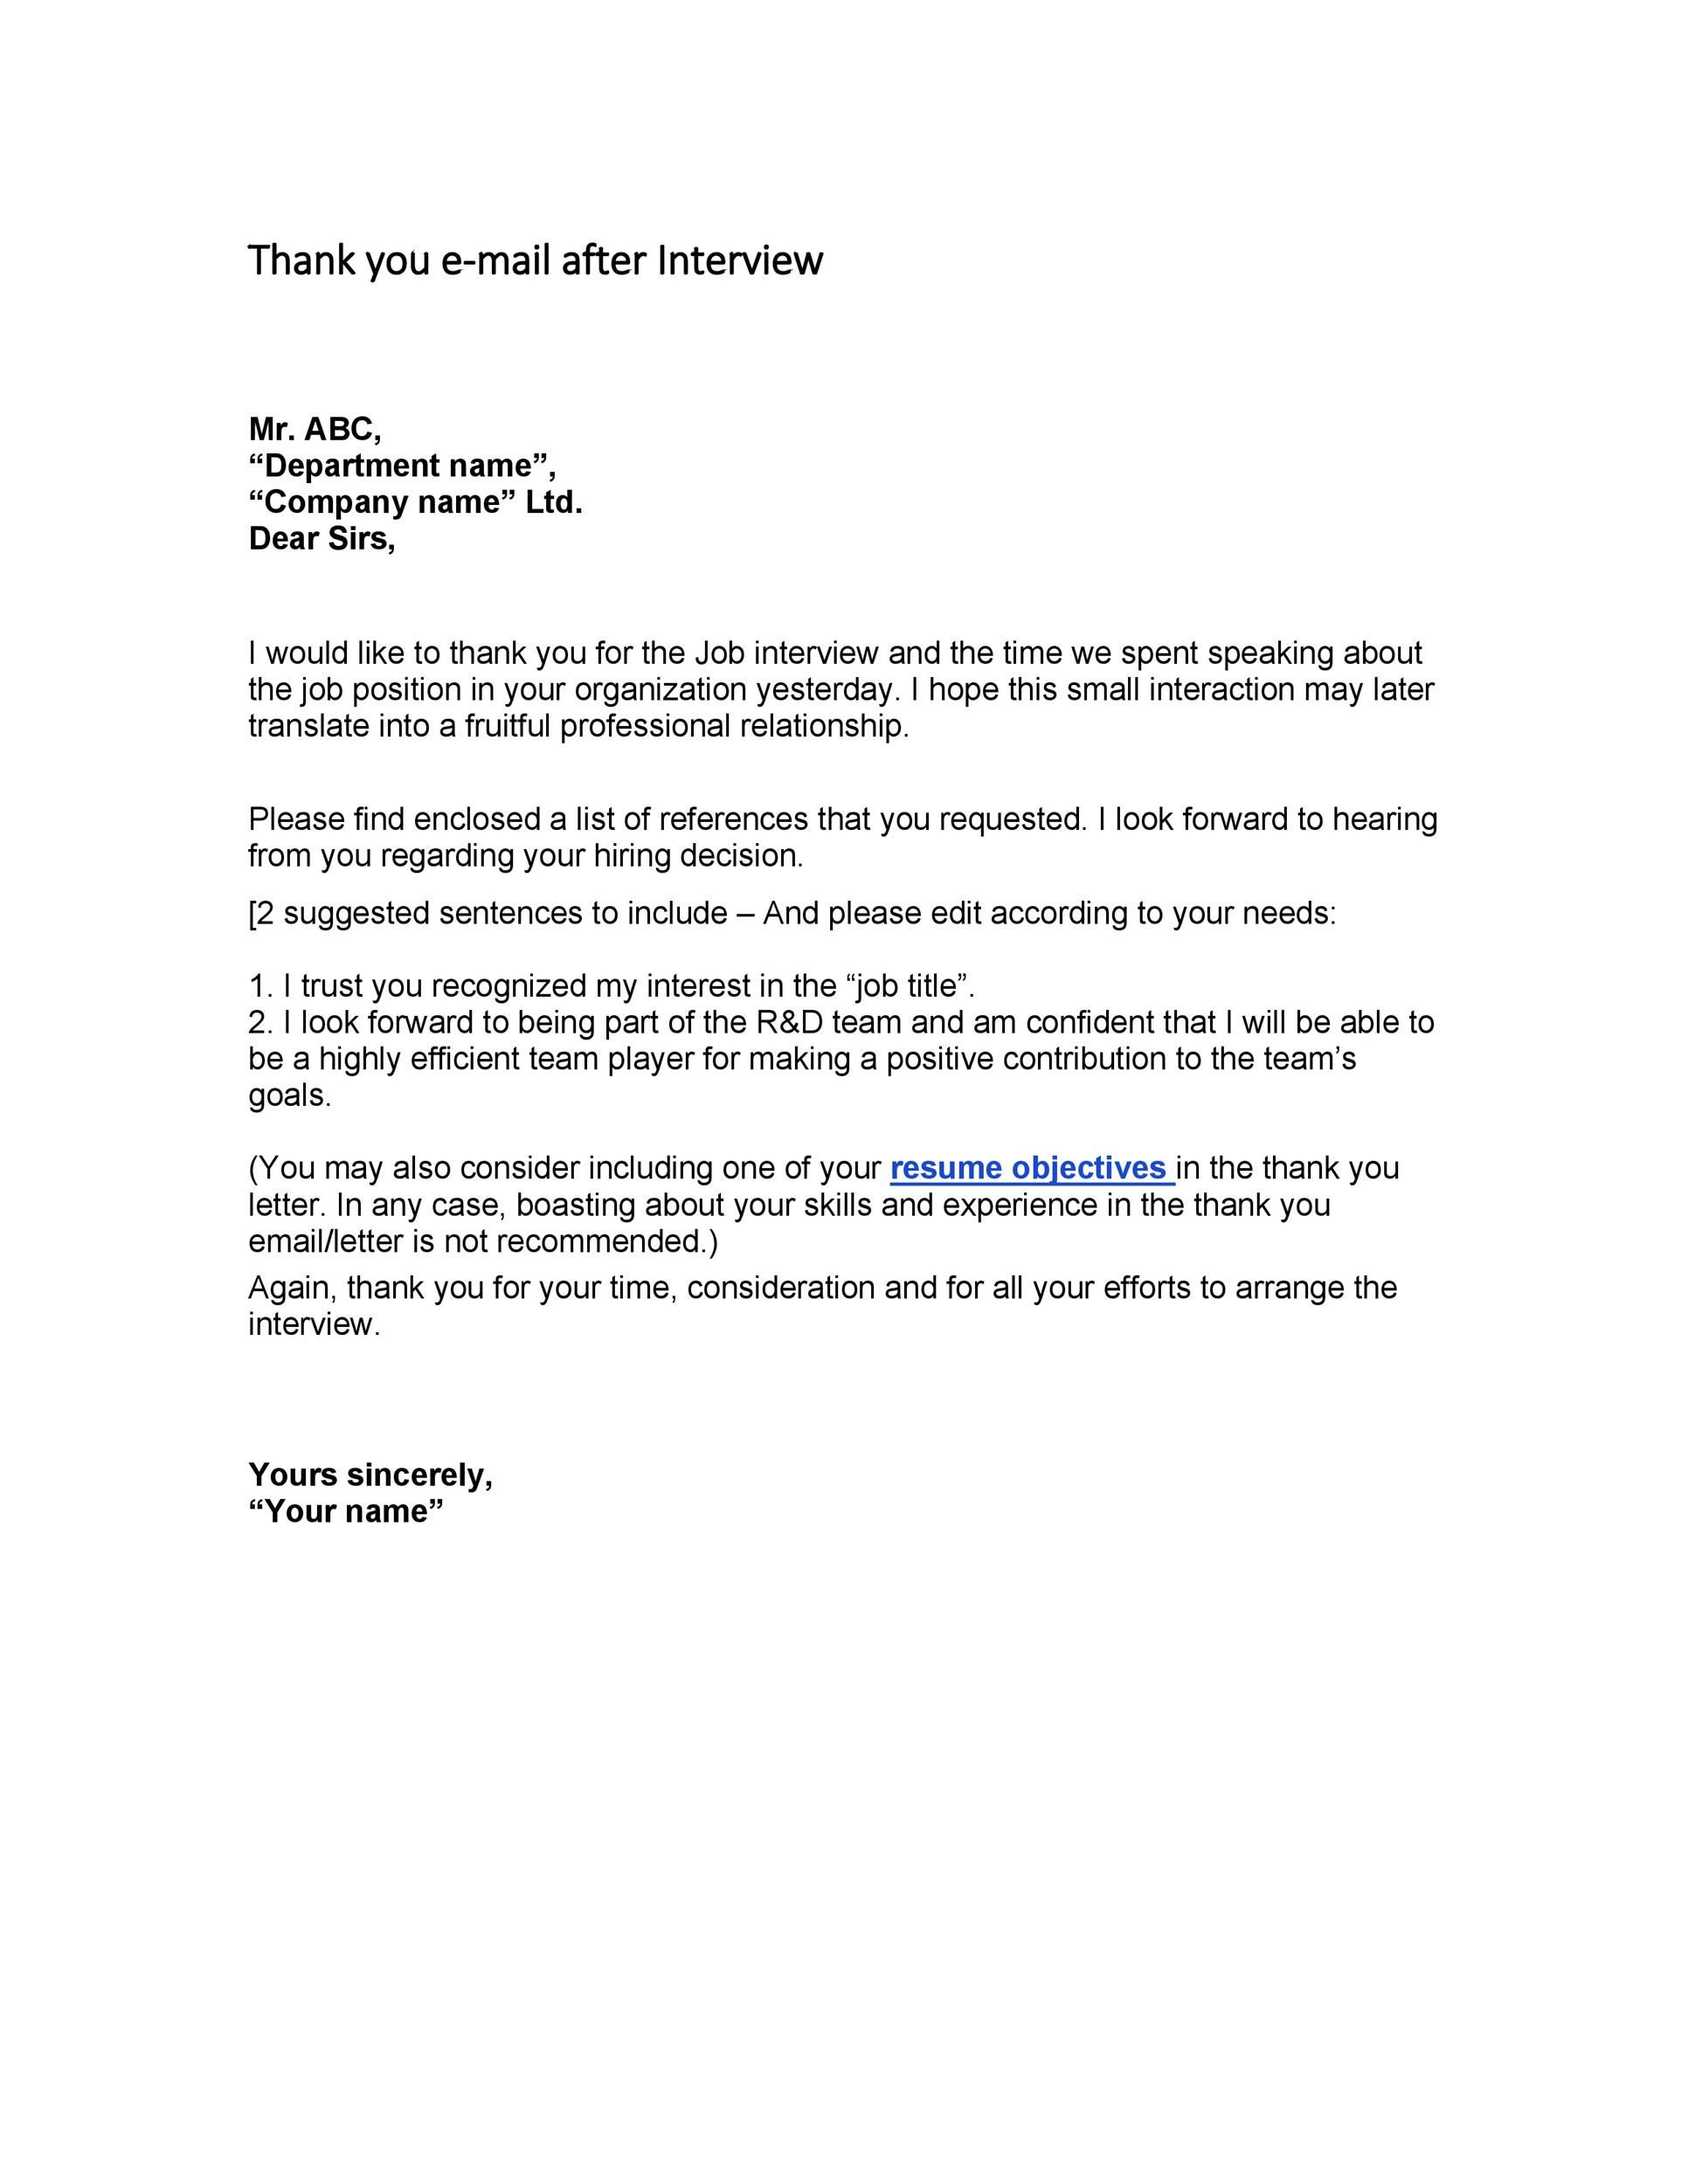 007 Excellent Follow Up Letter After Interview Photo  Handwritten Note Email Sample For Job TemplateFull